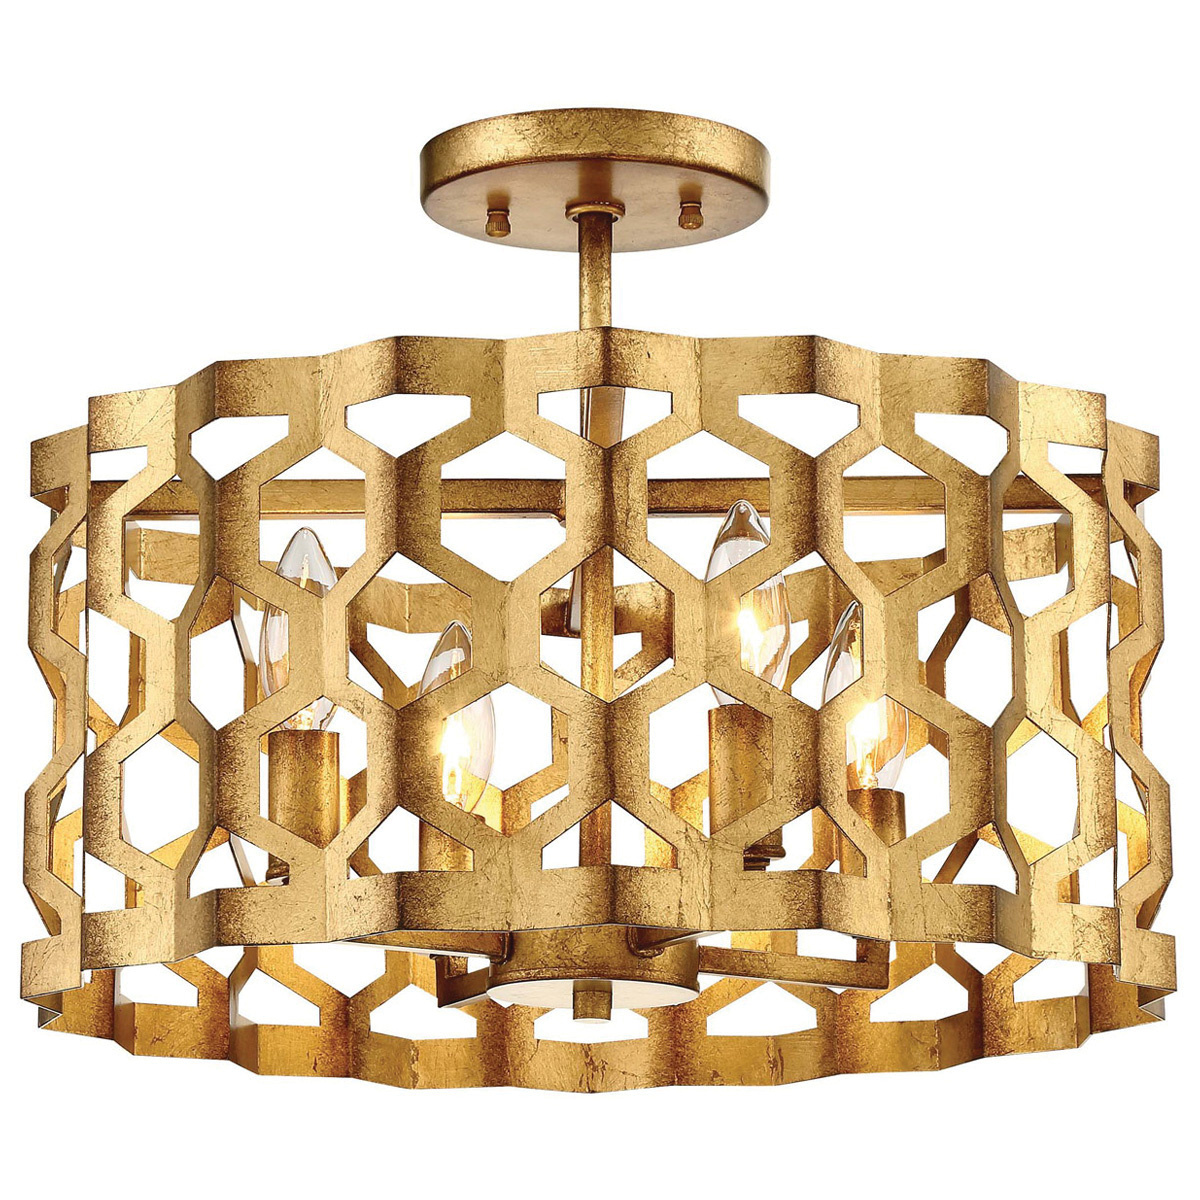 Metropolitan Lighting N6772 293 4 Light Semi Flush Pendant Fixture 60 Watt Pandora Gold Leaf Coronade